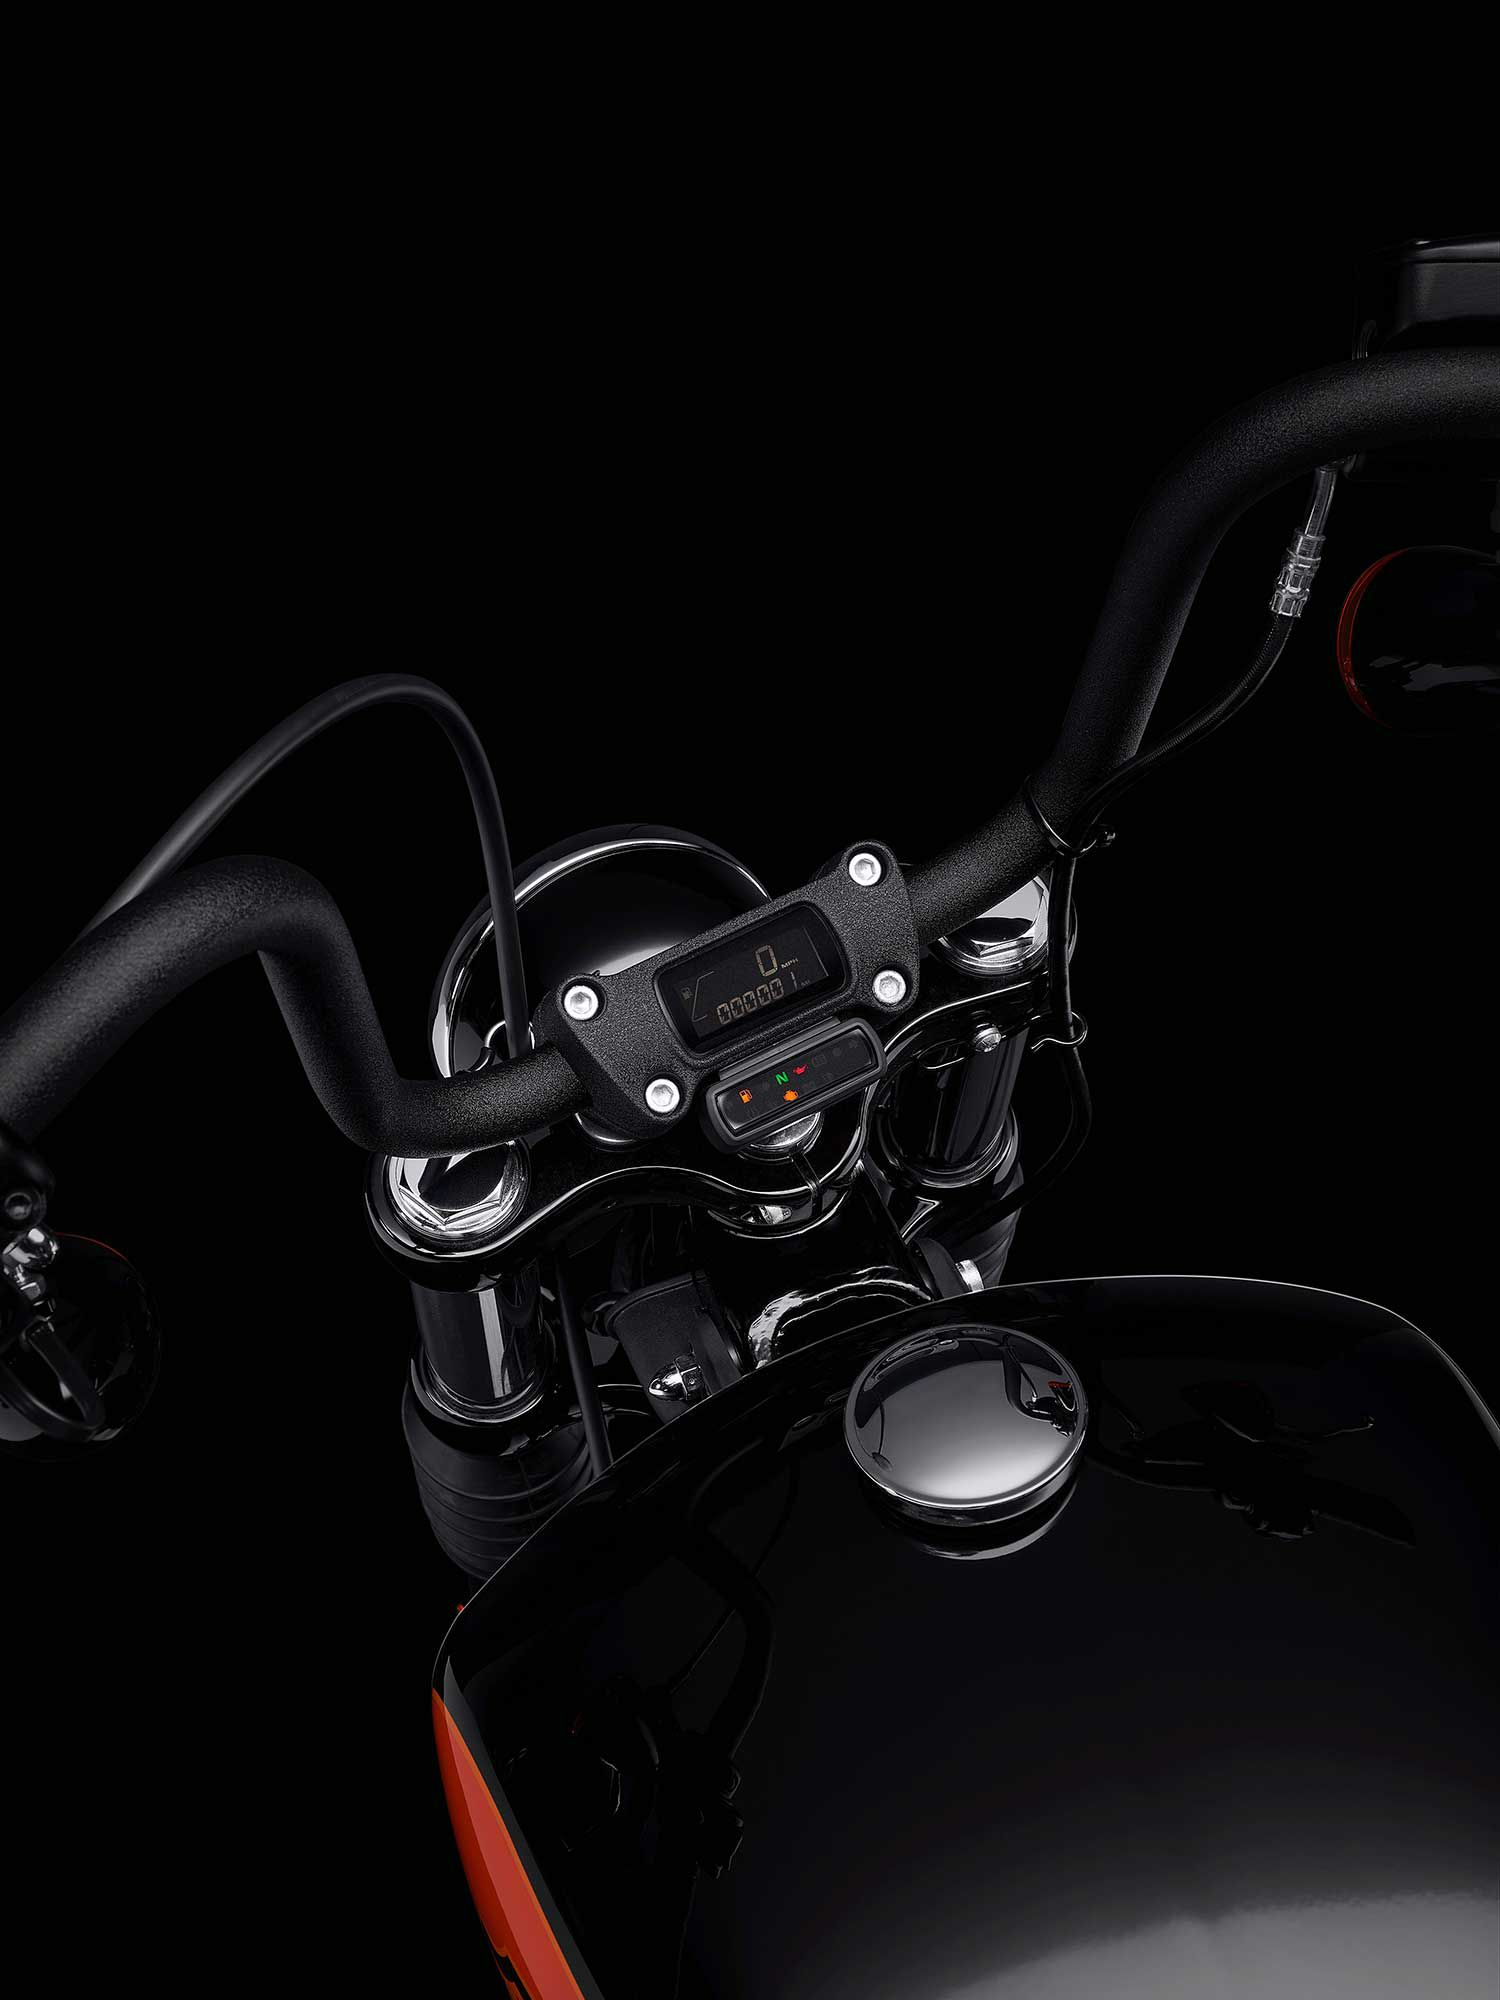 The low-profile LCD instrument panel is inset in the handlebar riser.